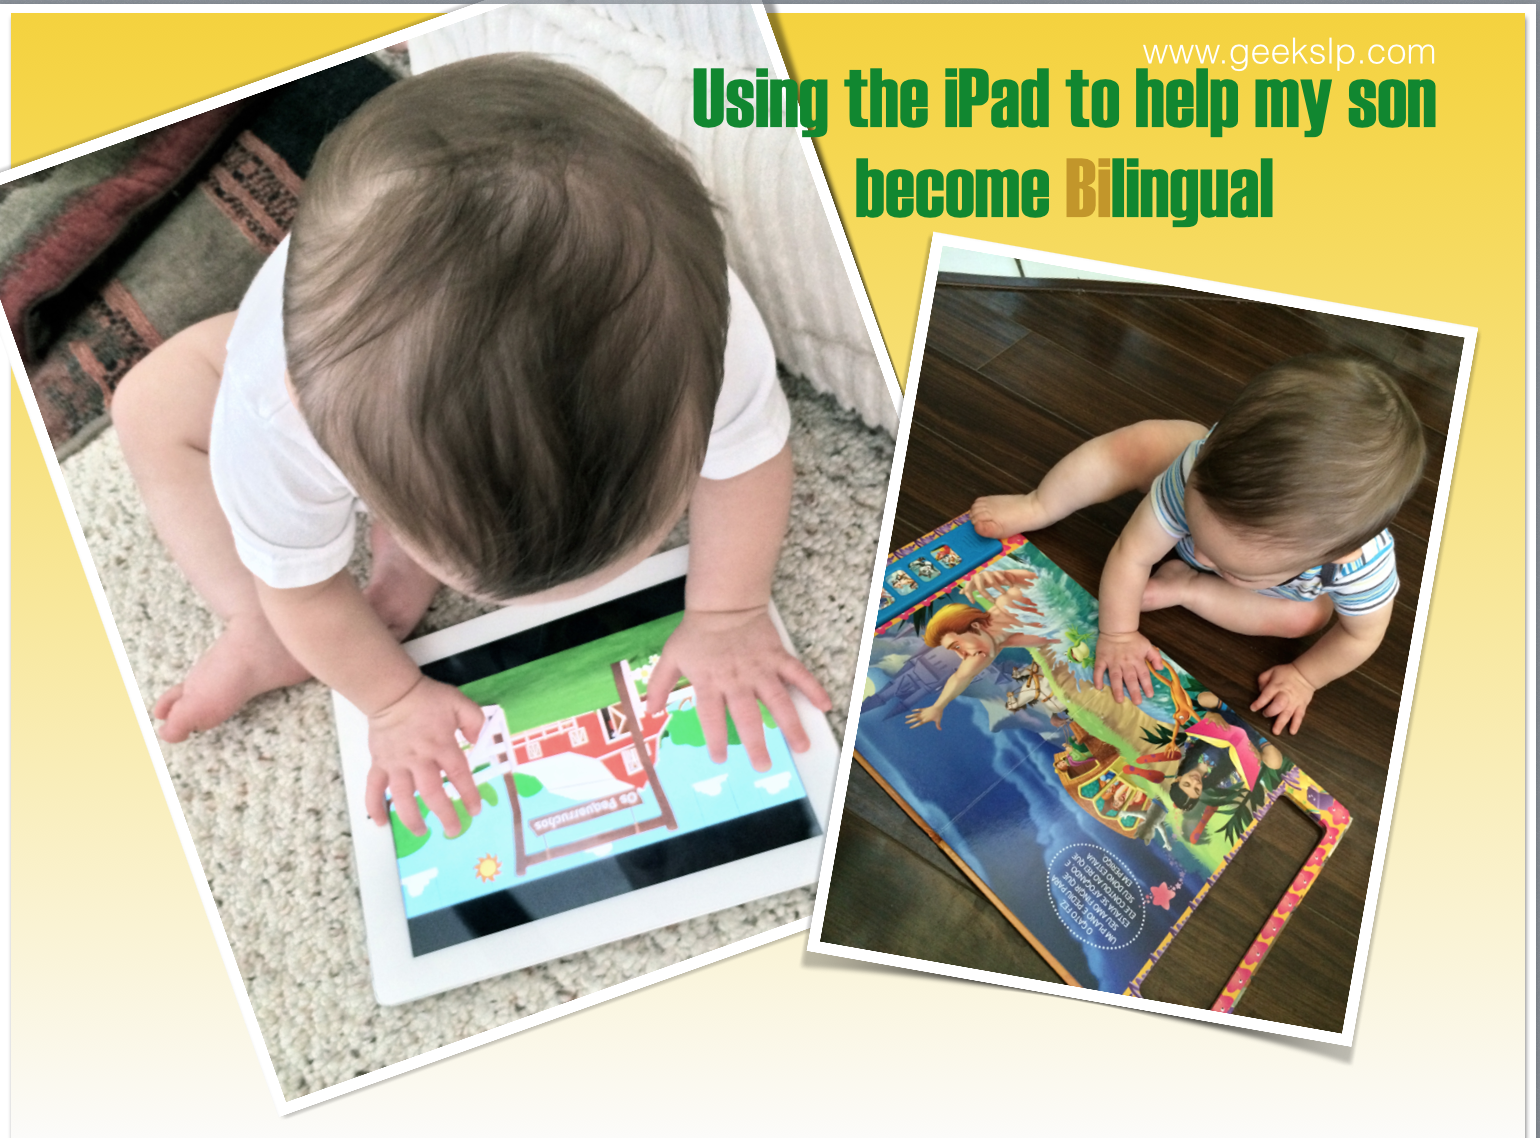 Using the iPad to help my son become Bilingual